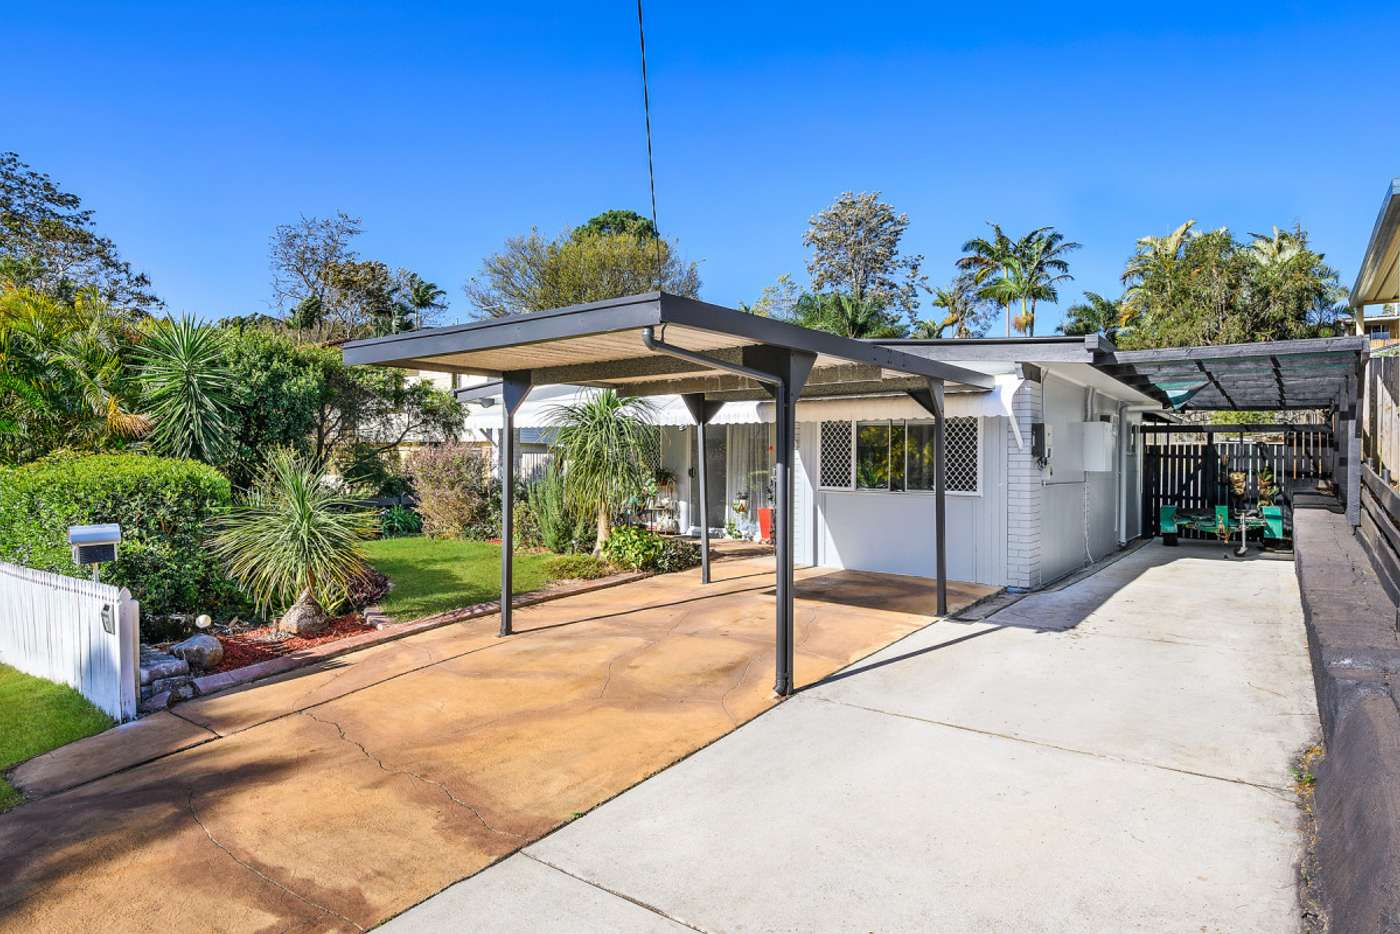 Fifth view of Homely house listing, 17 Glenmore Street, Kallangur QLD 4503